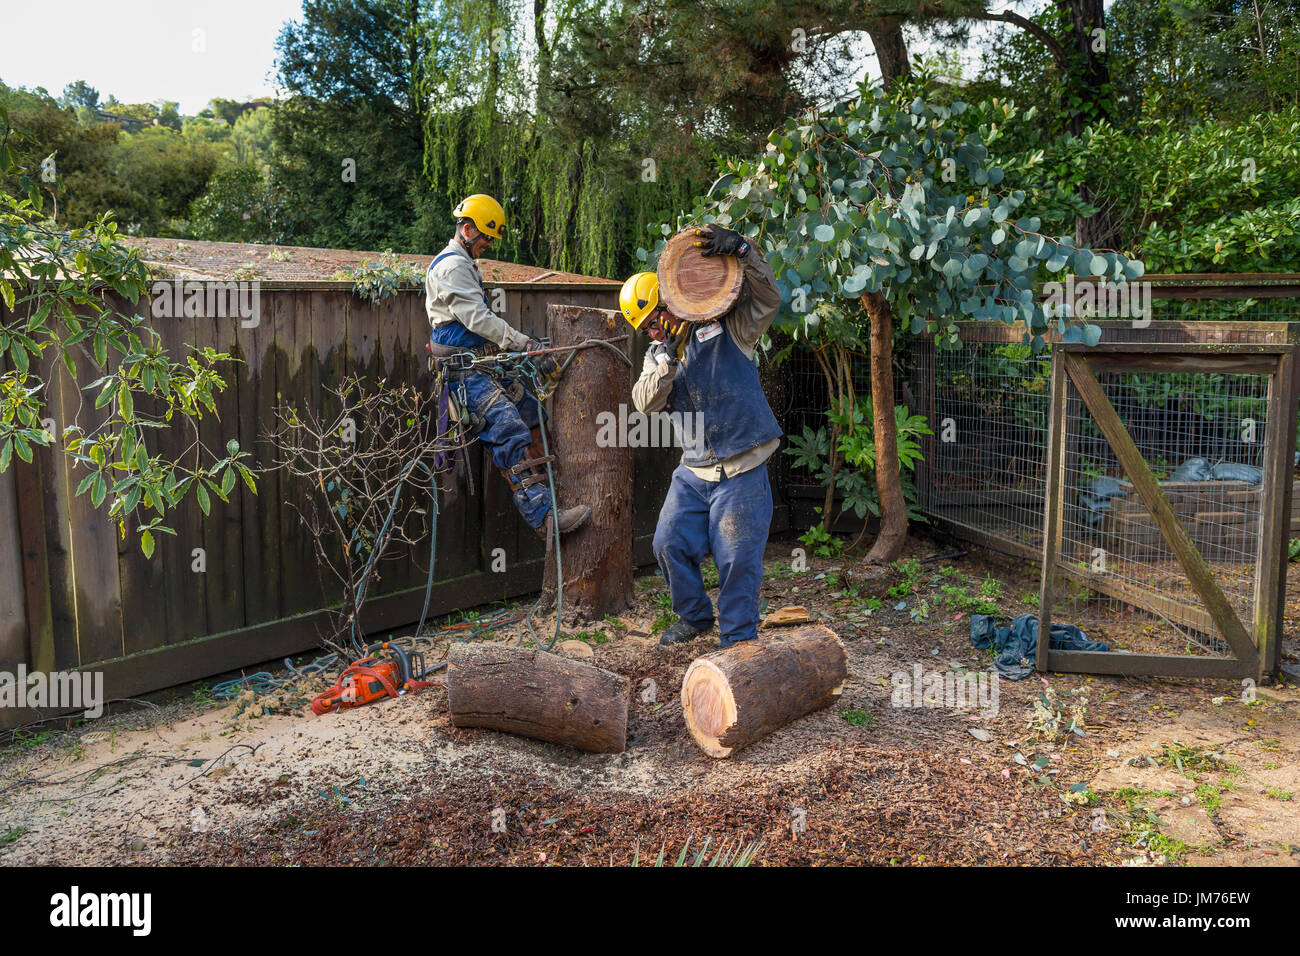 tree trimmers, tree trimming service, cutting down eucalyptus tree, using chainsaw, tree care, lumberman, city of Novato, Marin County, California - Stock Image